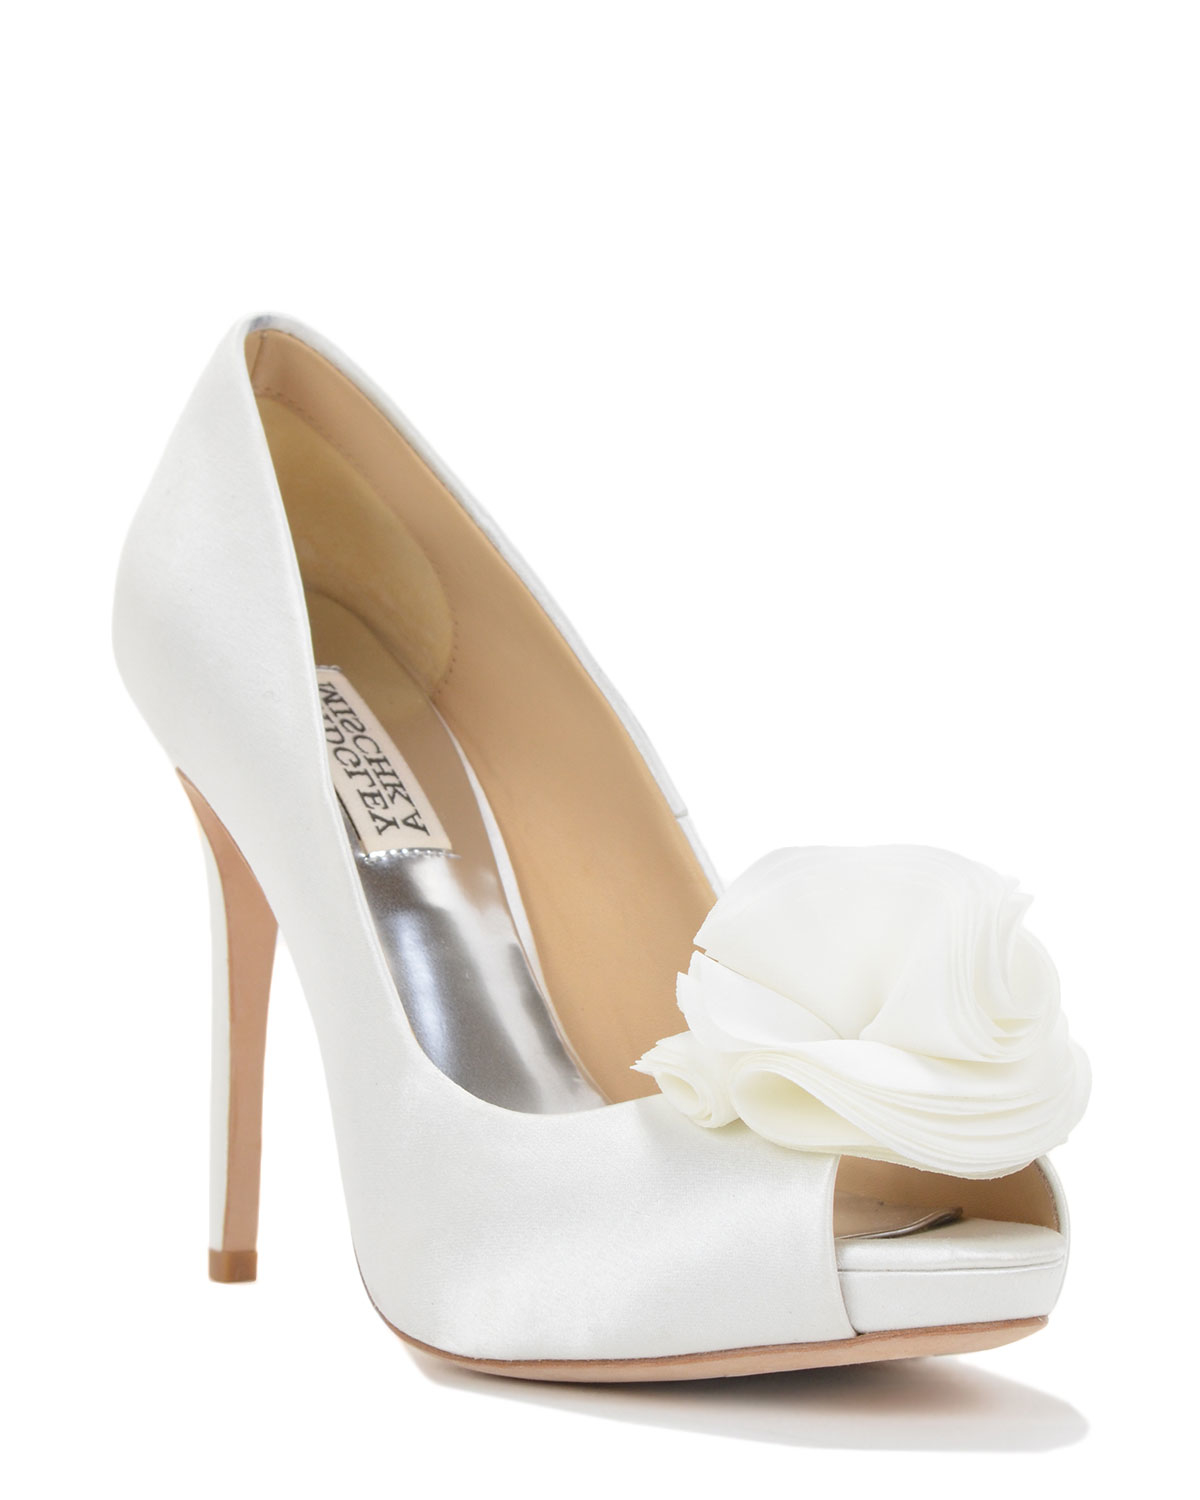 badgley mischka silk ruffle evening shoe in white lyst